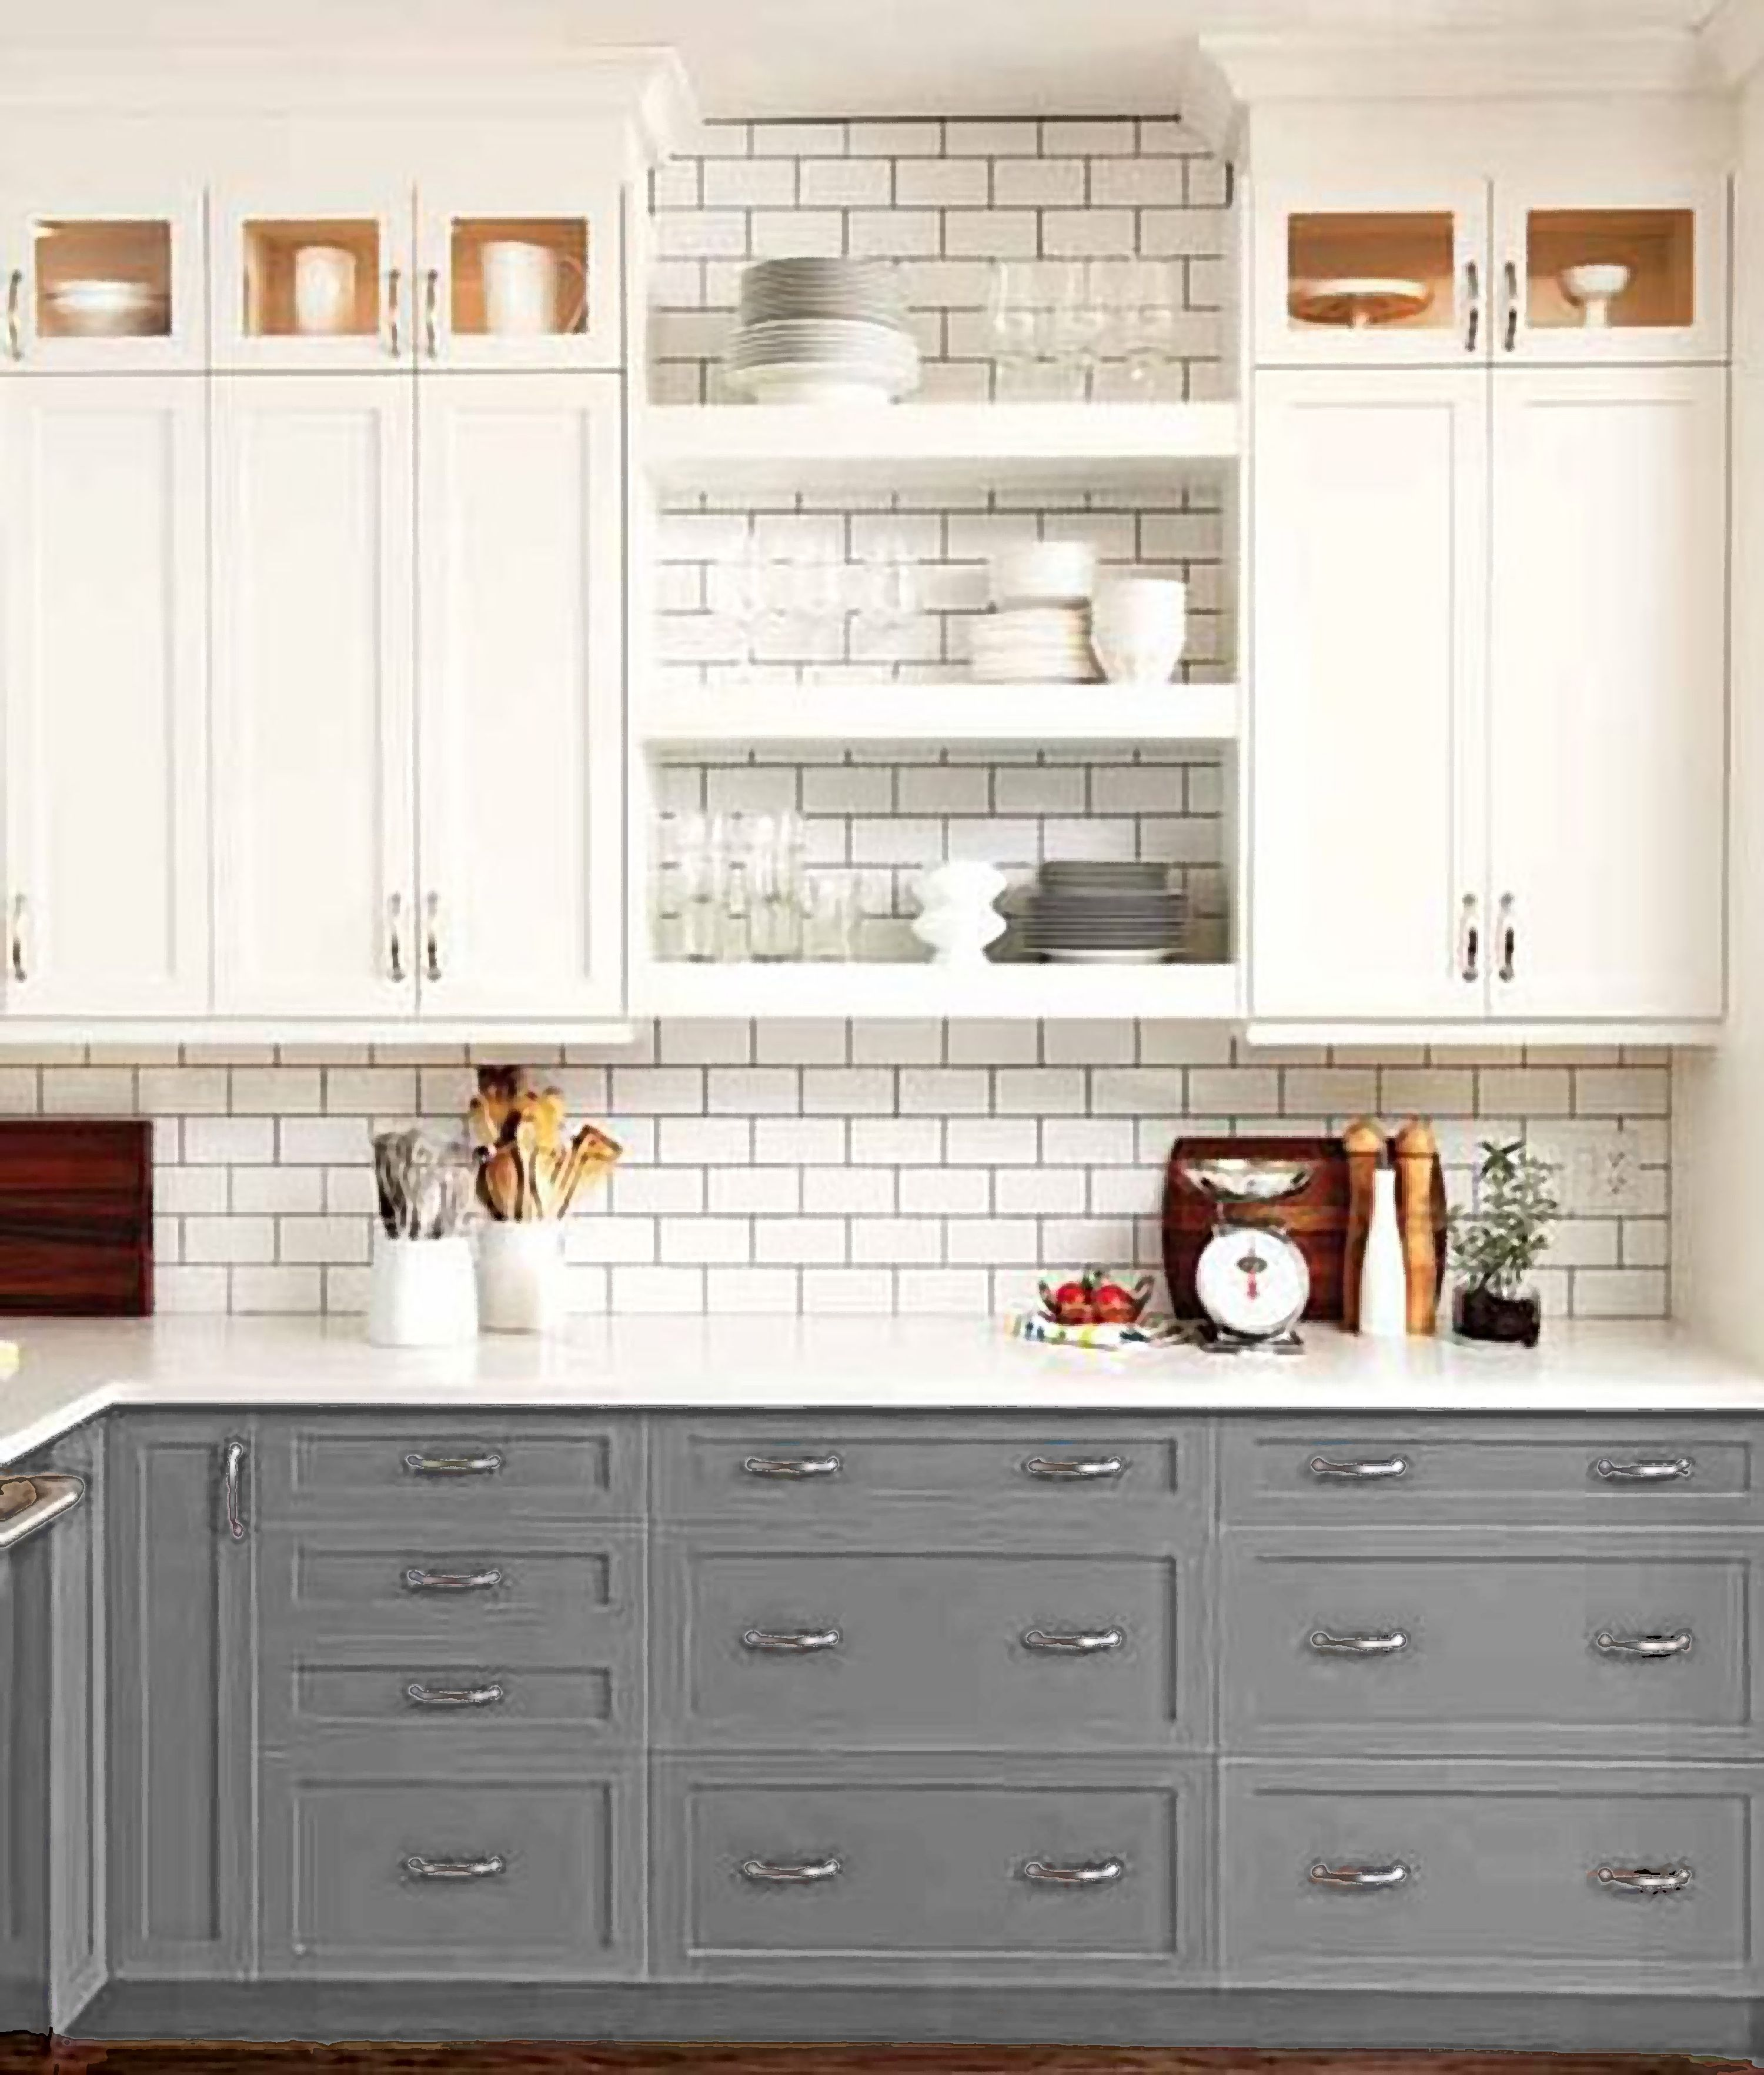 2 Tone Brown Kitchen Cabinets Two Toned Kitchen Cabinets Grey White Open Shelves